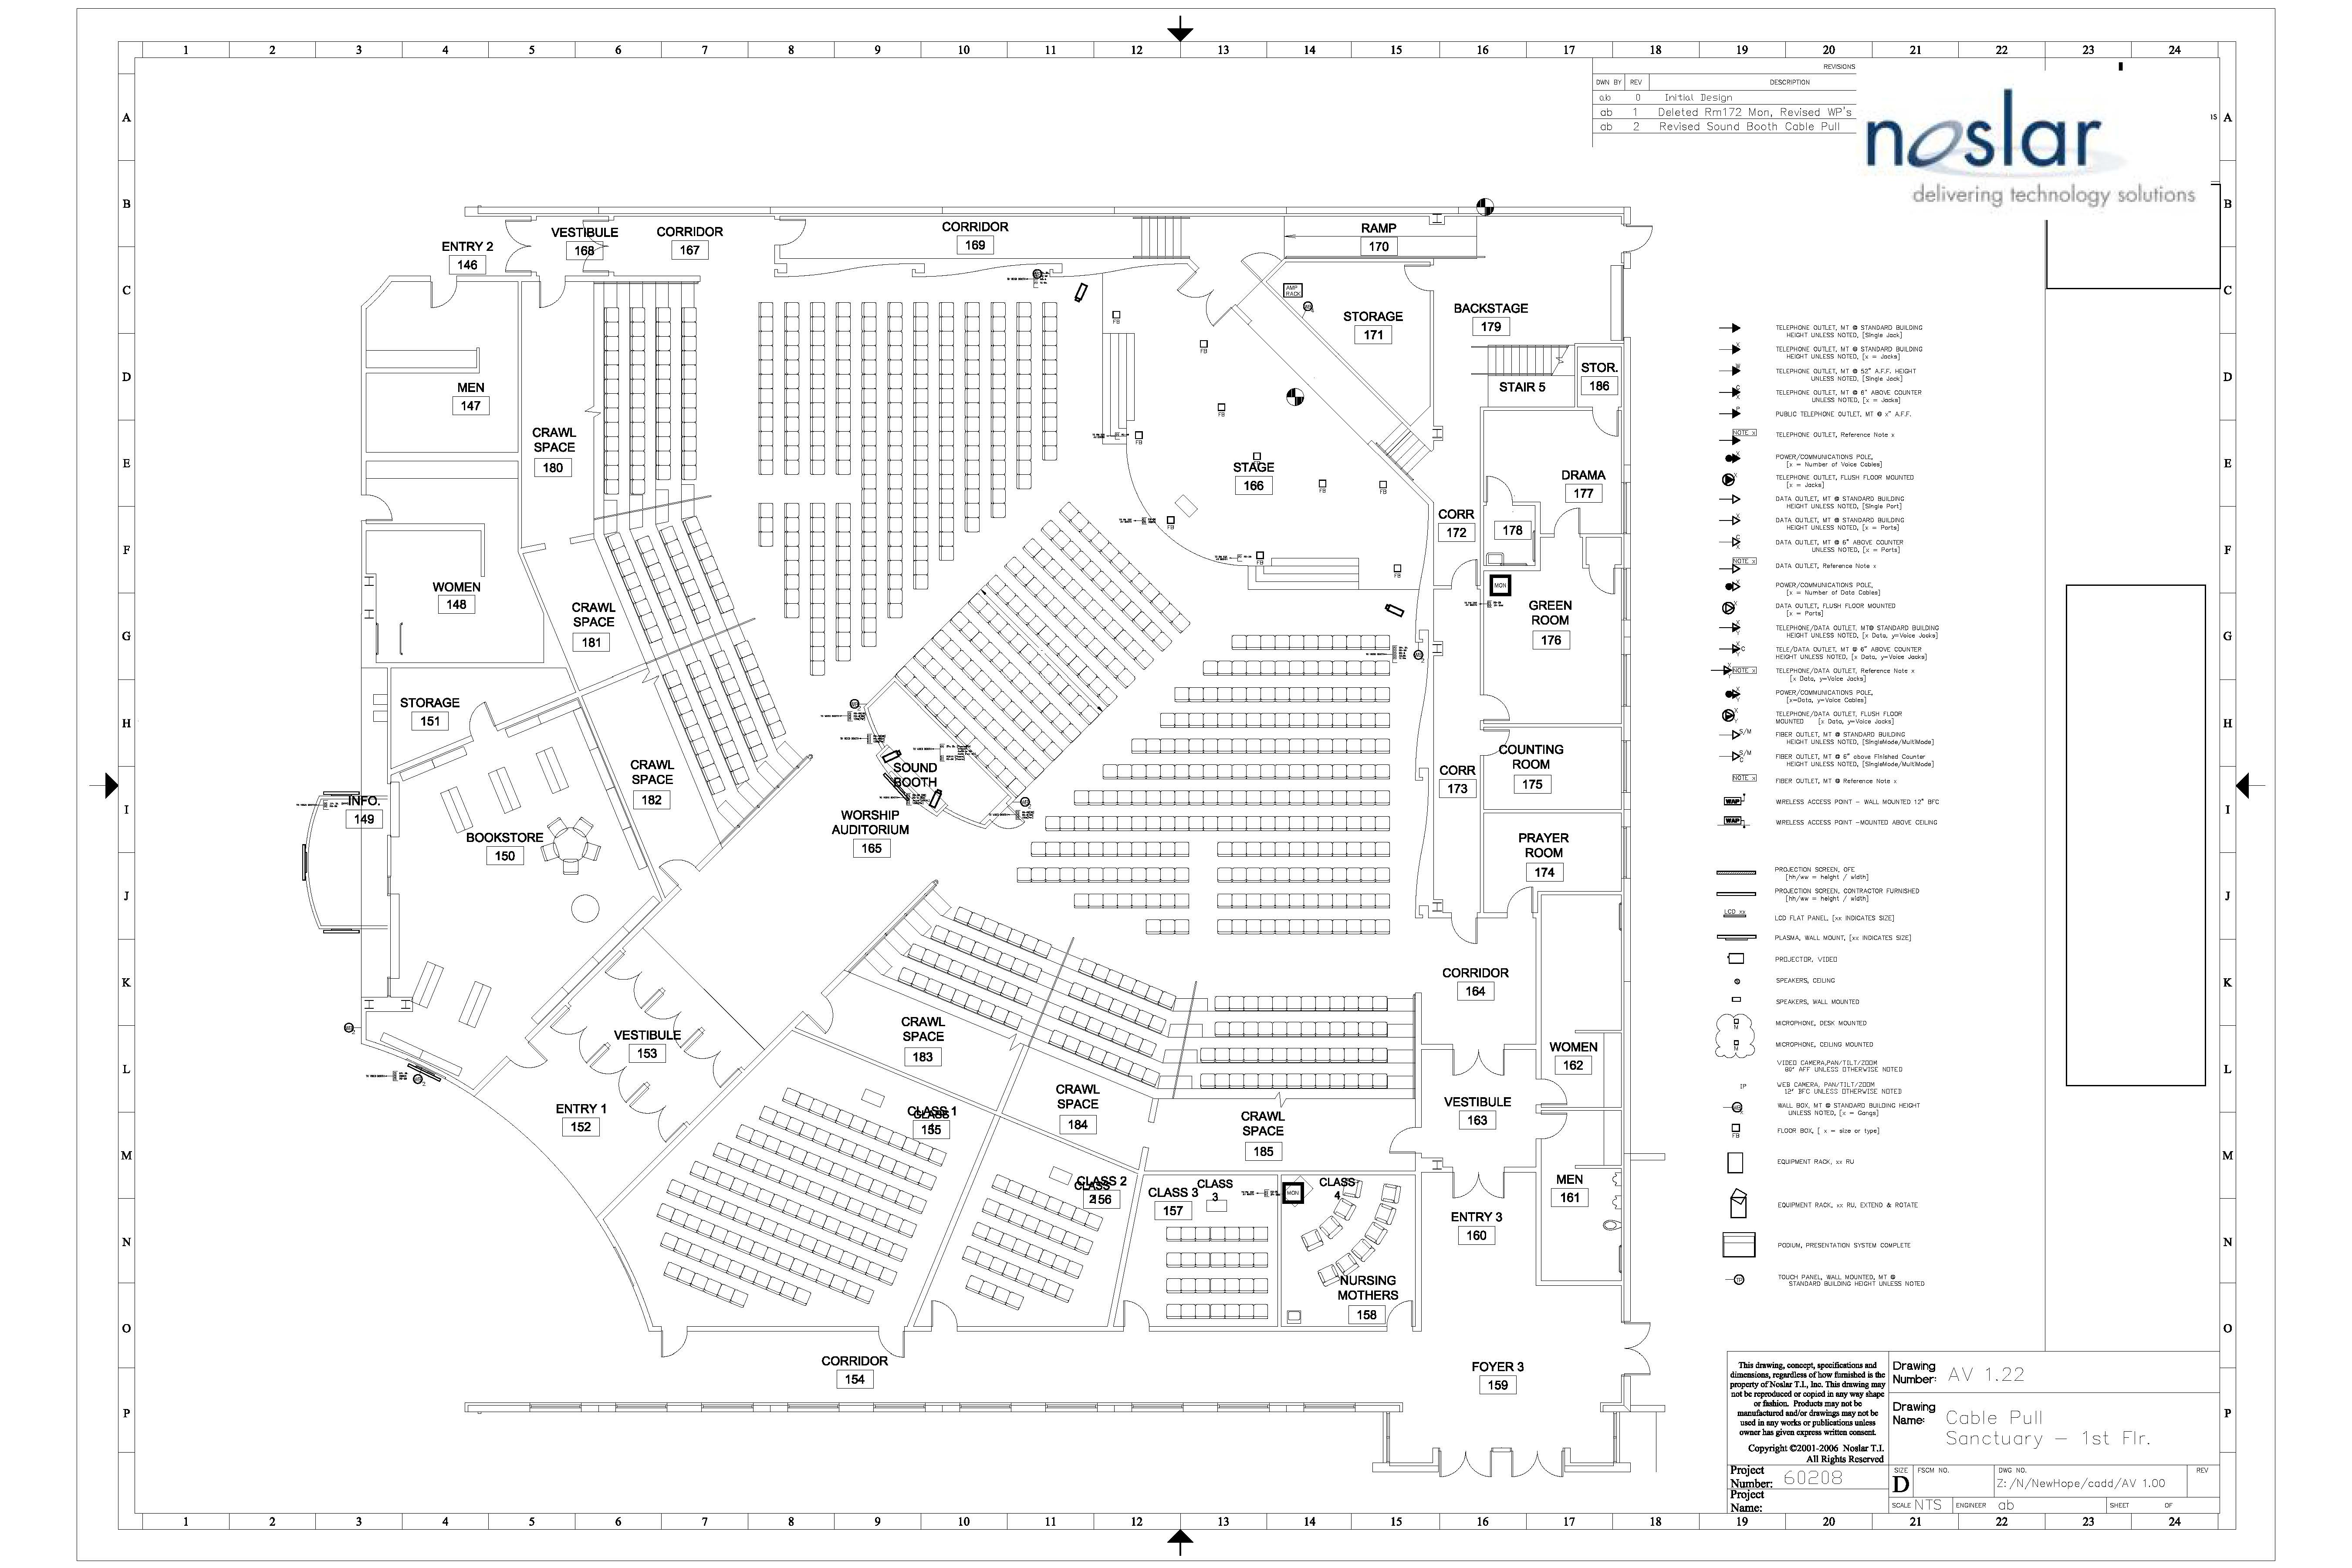 Noslar sample of house of worship technology drawing plan view- Church video audio control and lighting